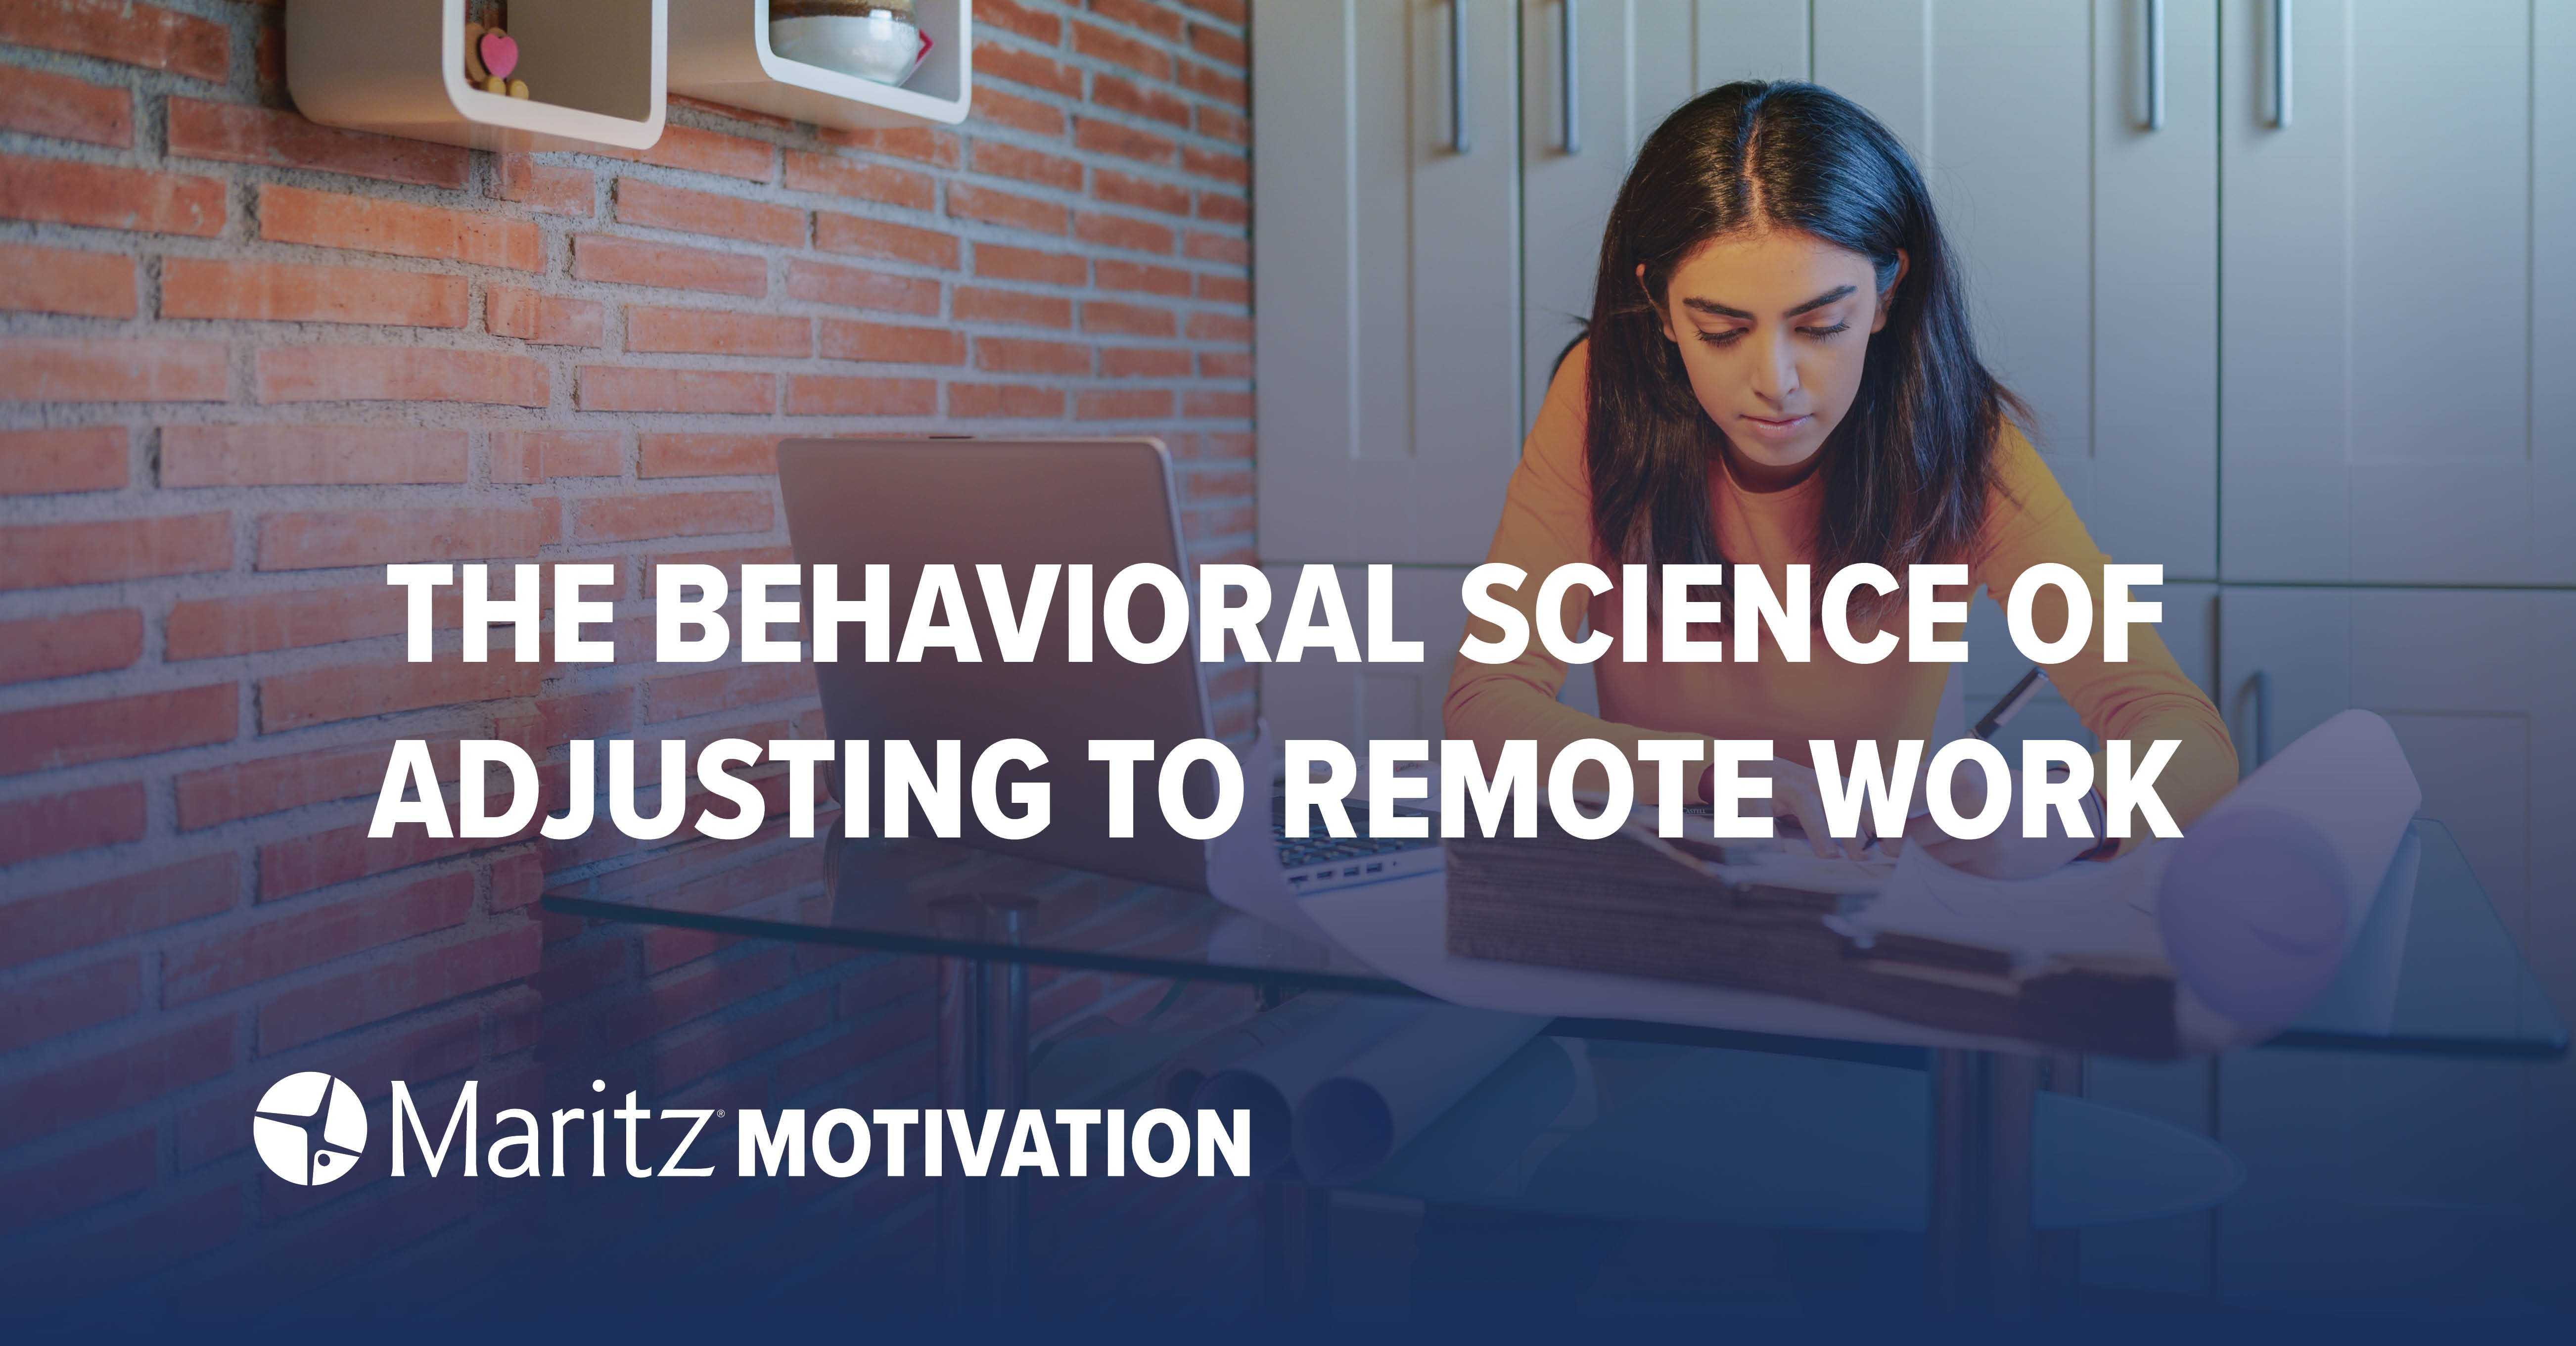 The Behavioral Science of Adjusting to Remote Work